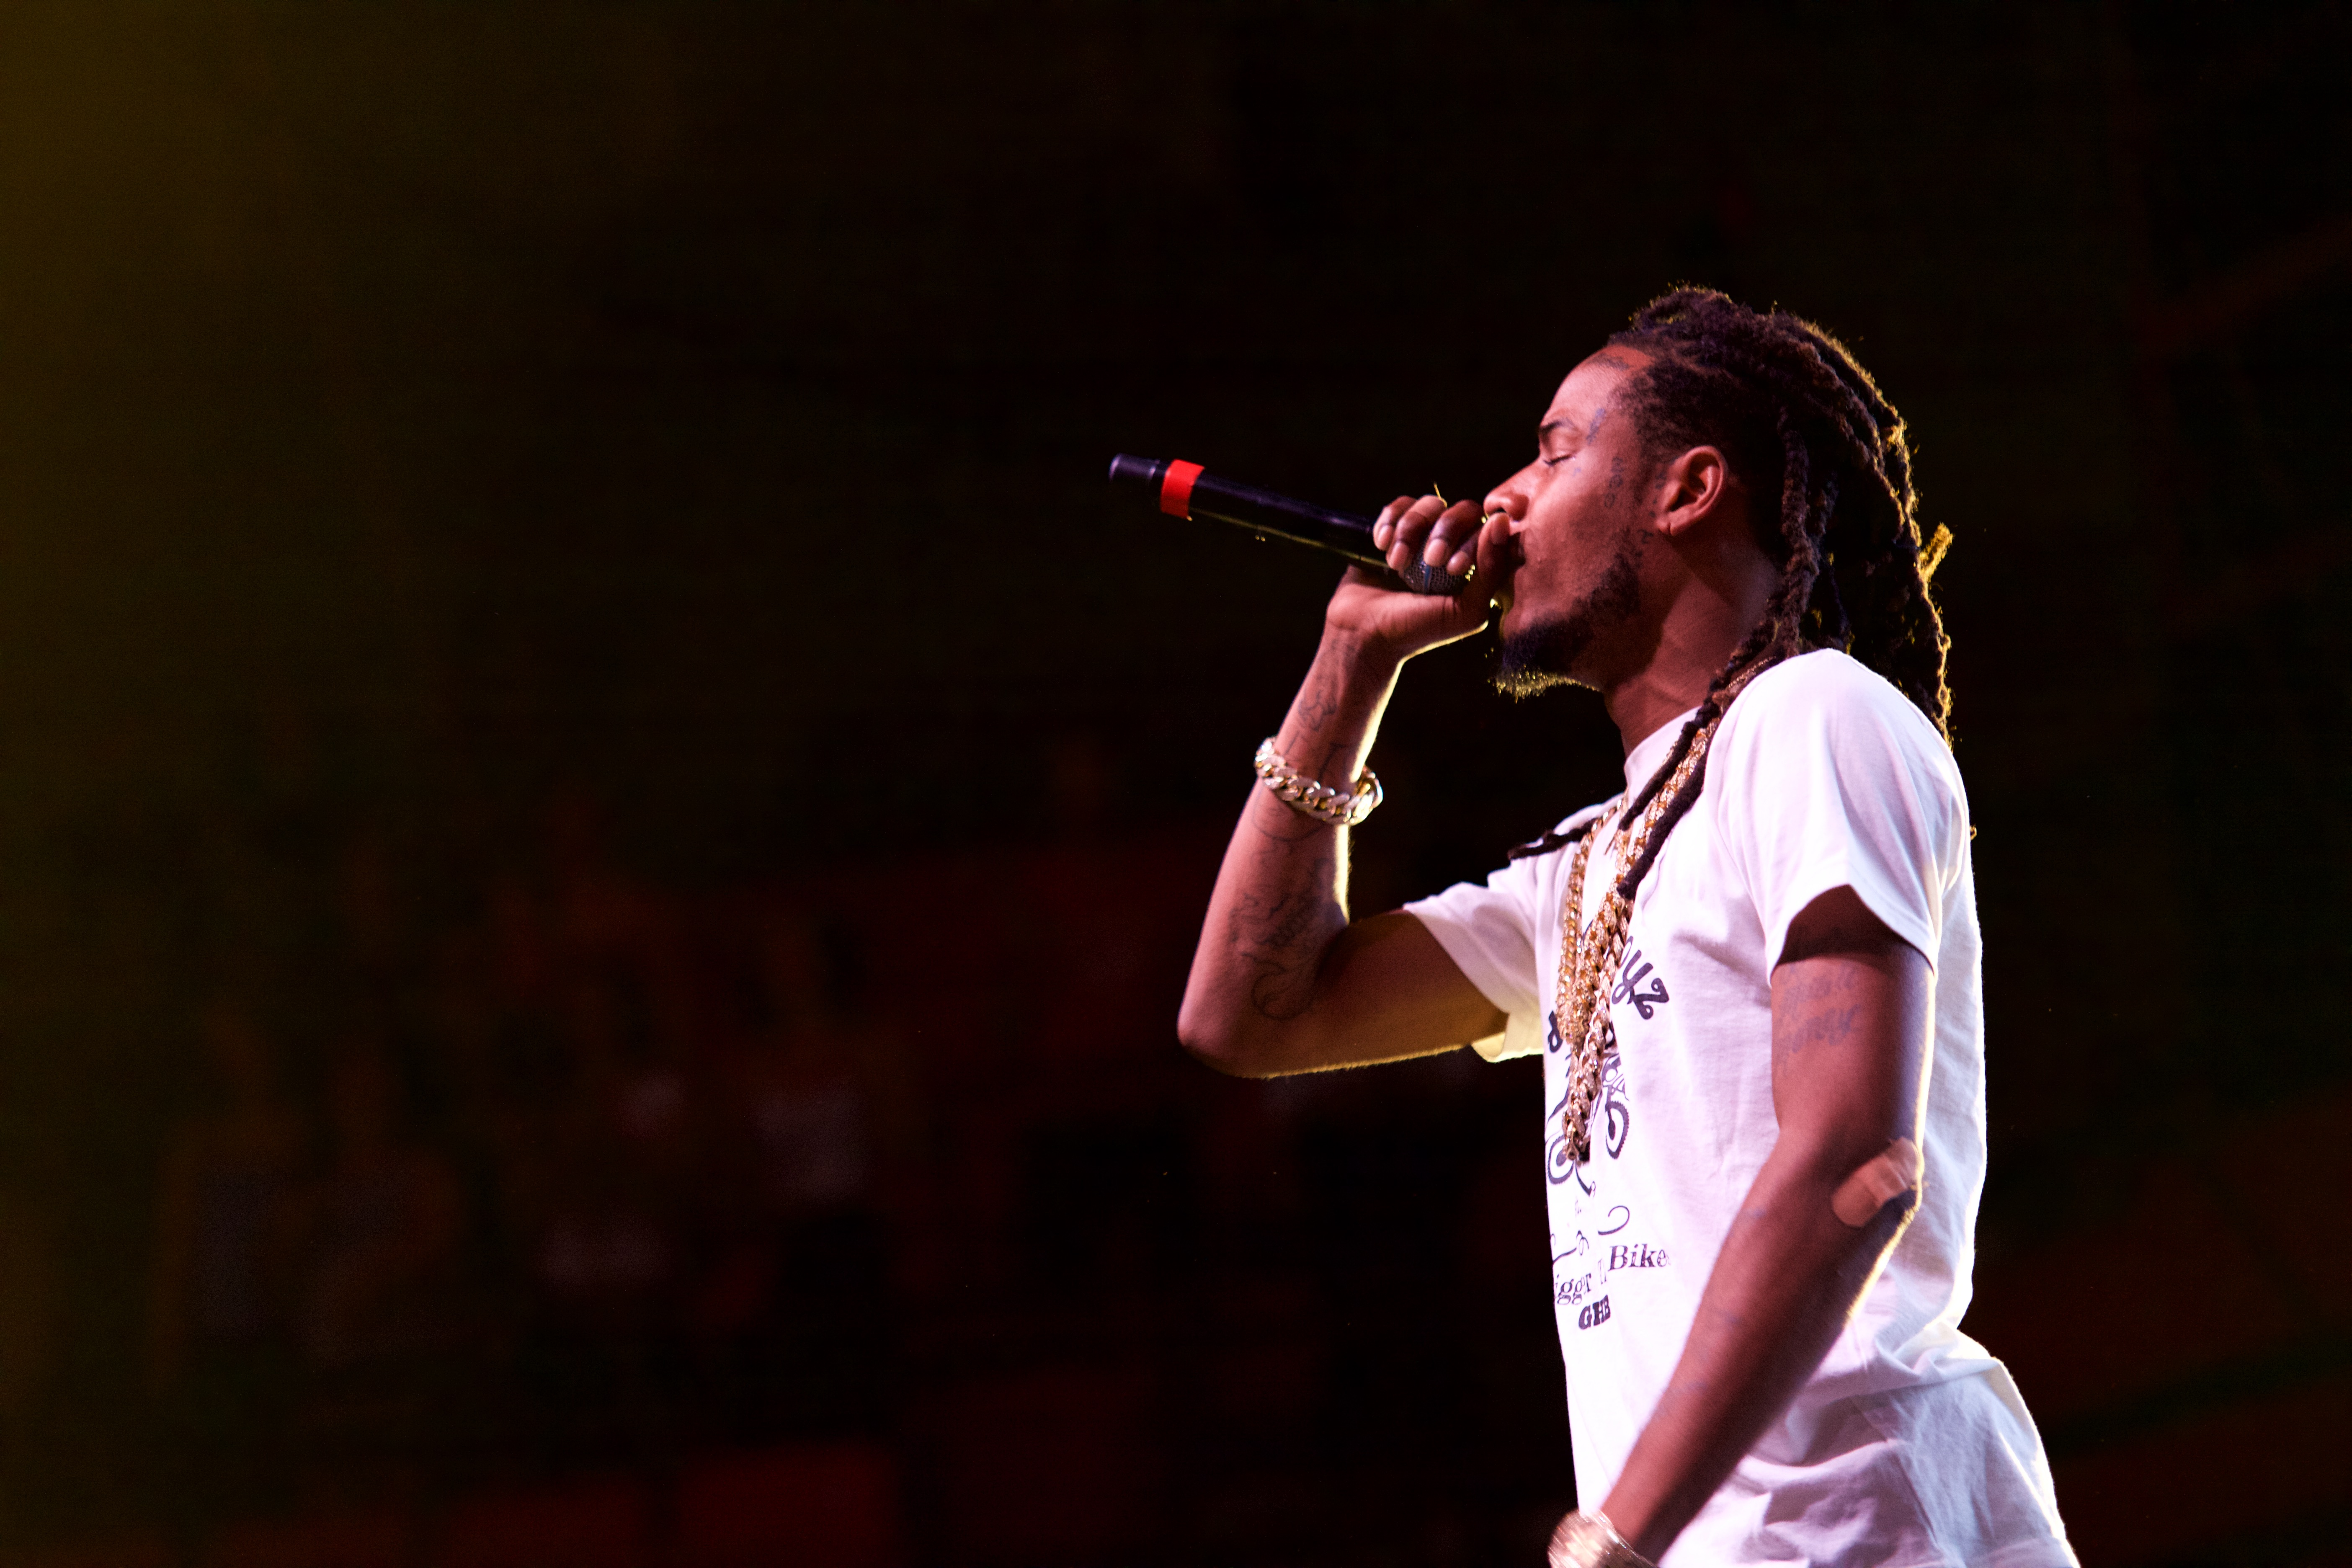 Willie Maxwell II, better known by his stage name Fetty Wap, headlined Back to the Brook on Sept. 12, 2016. ARACELY JIMENEZ/THE STATESMAN